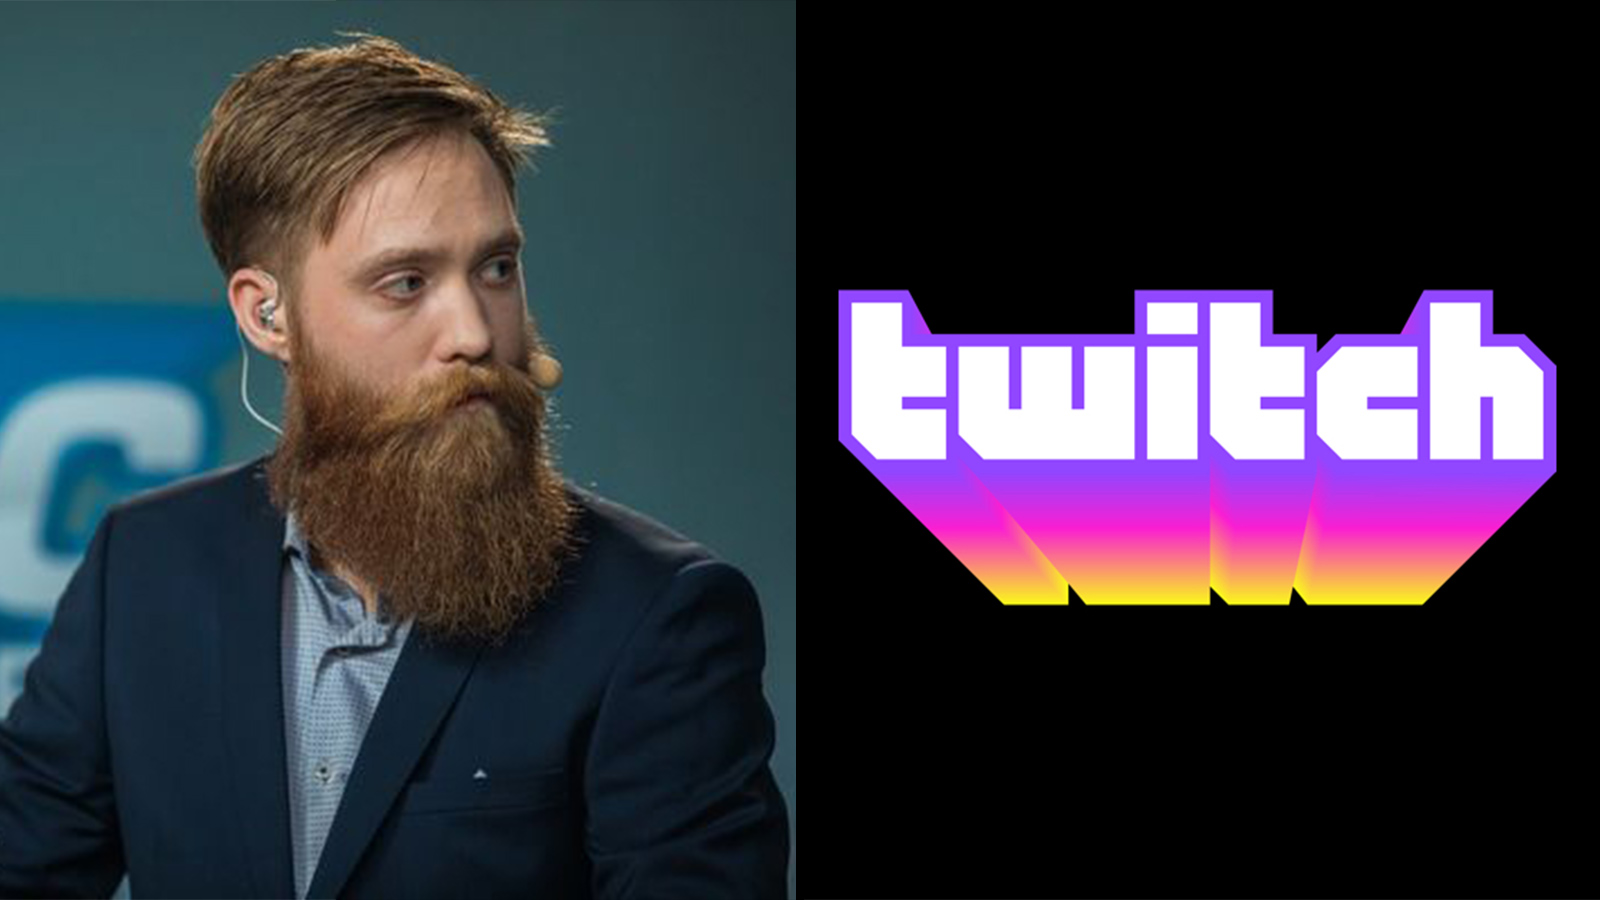 Dreamhack/Twitch